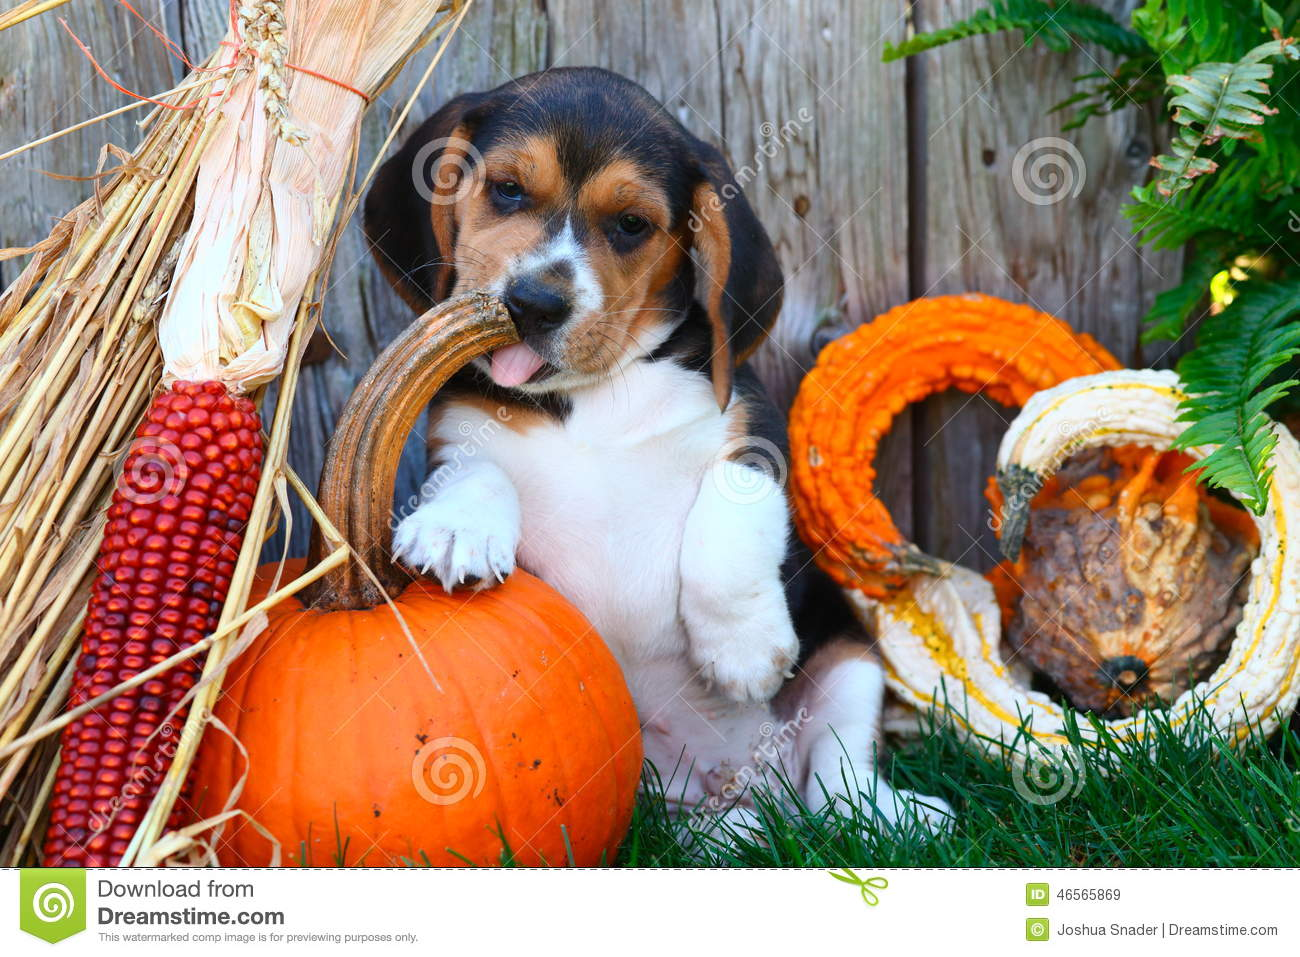 Fall Puppy Wallpaper Beagle Puppy Sitting With A Pumpkin Gourds And Other